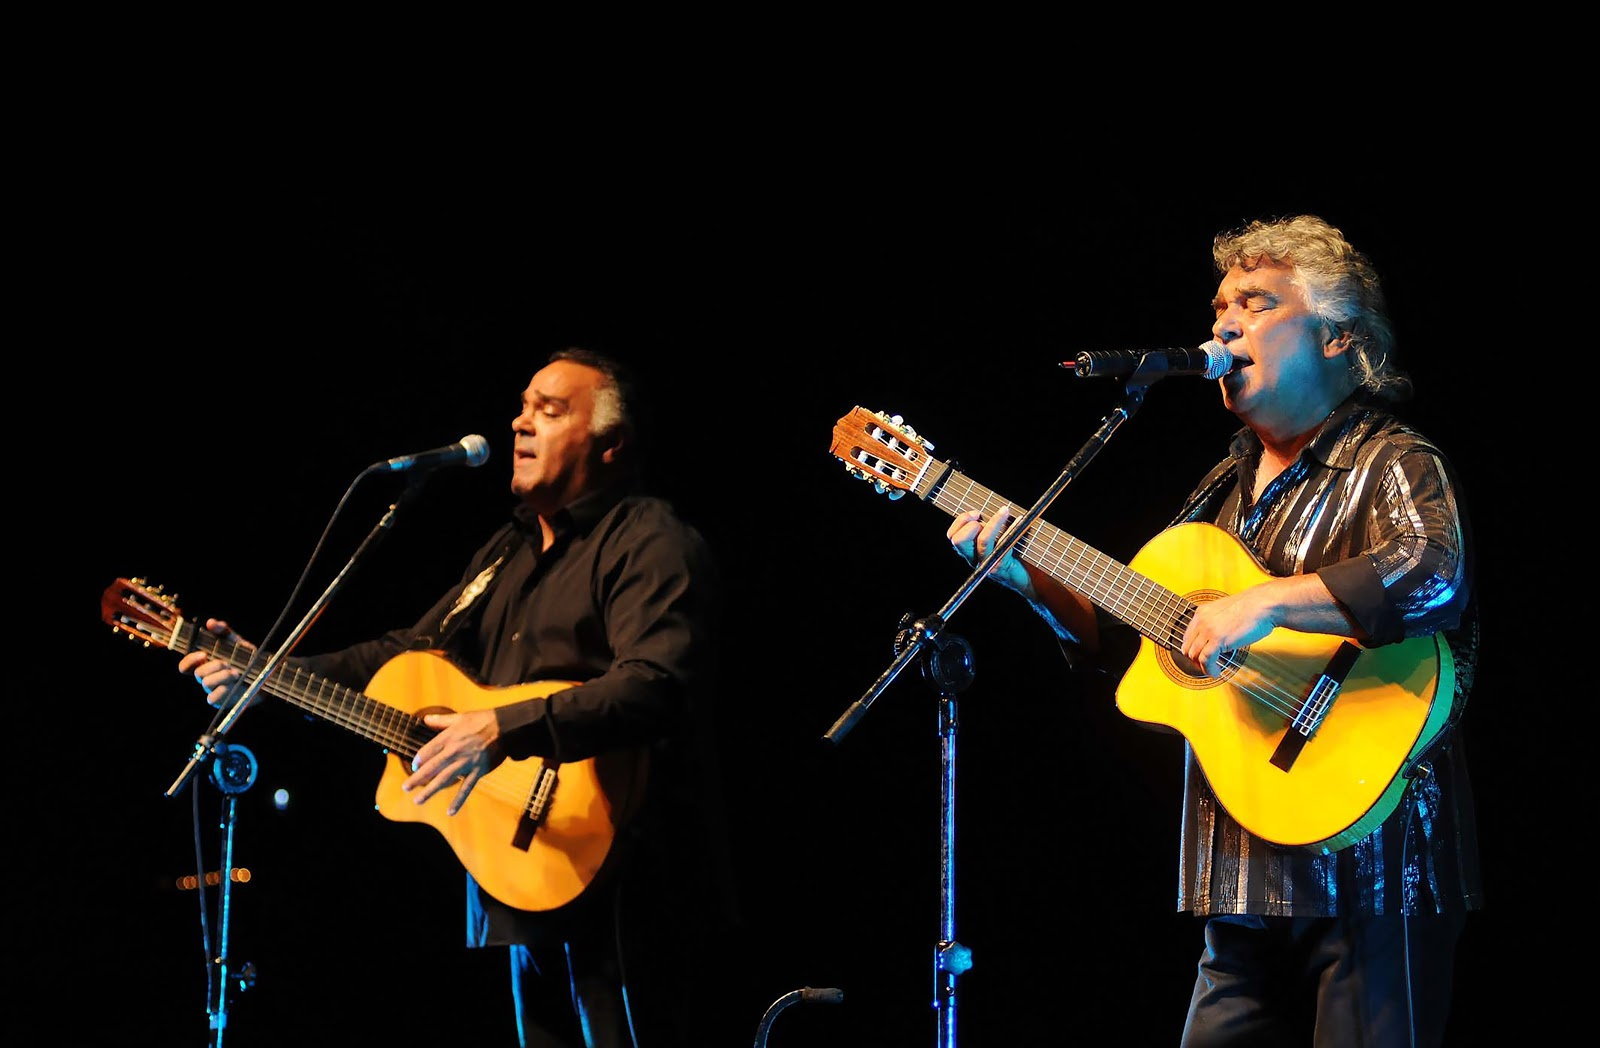 An image of the Gipsy Kings performing live with Spanish guitars.